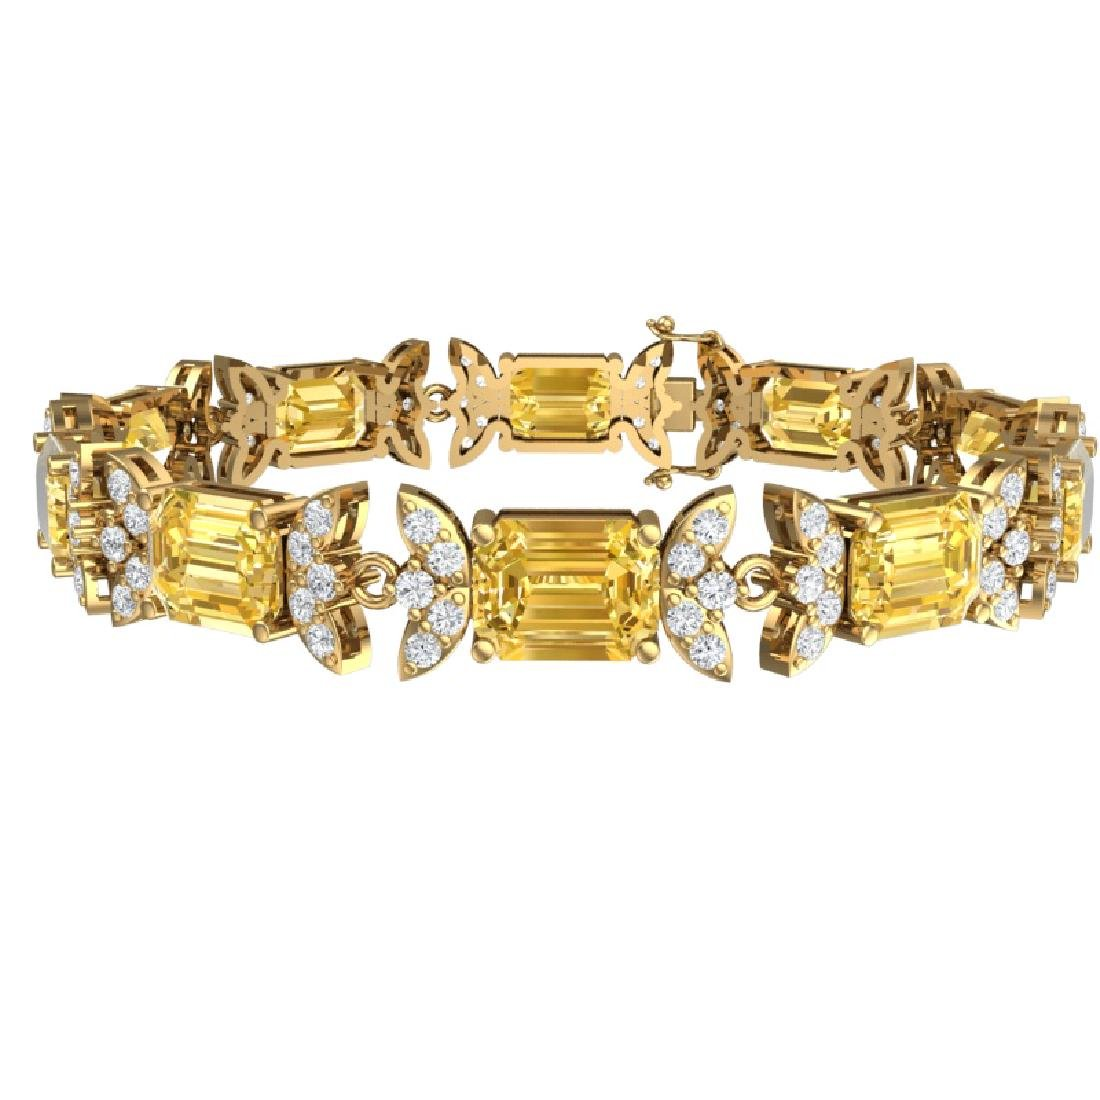 35.21 CTW Royalty Canary Citrine & VS Diamond Bracelet - 3